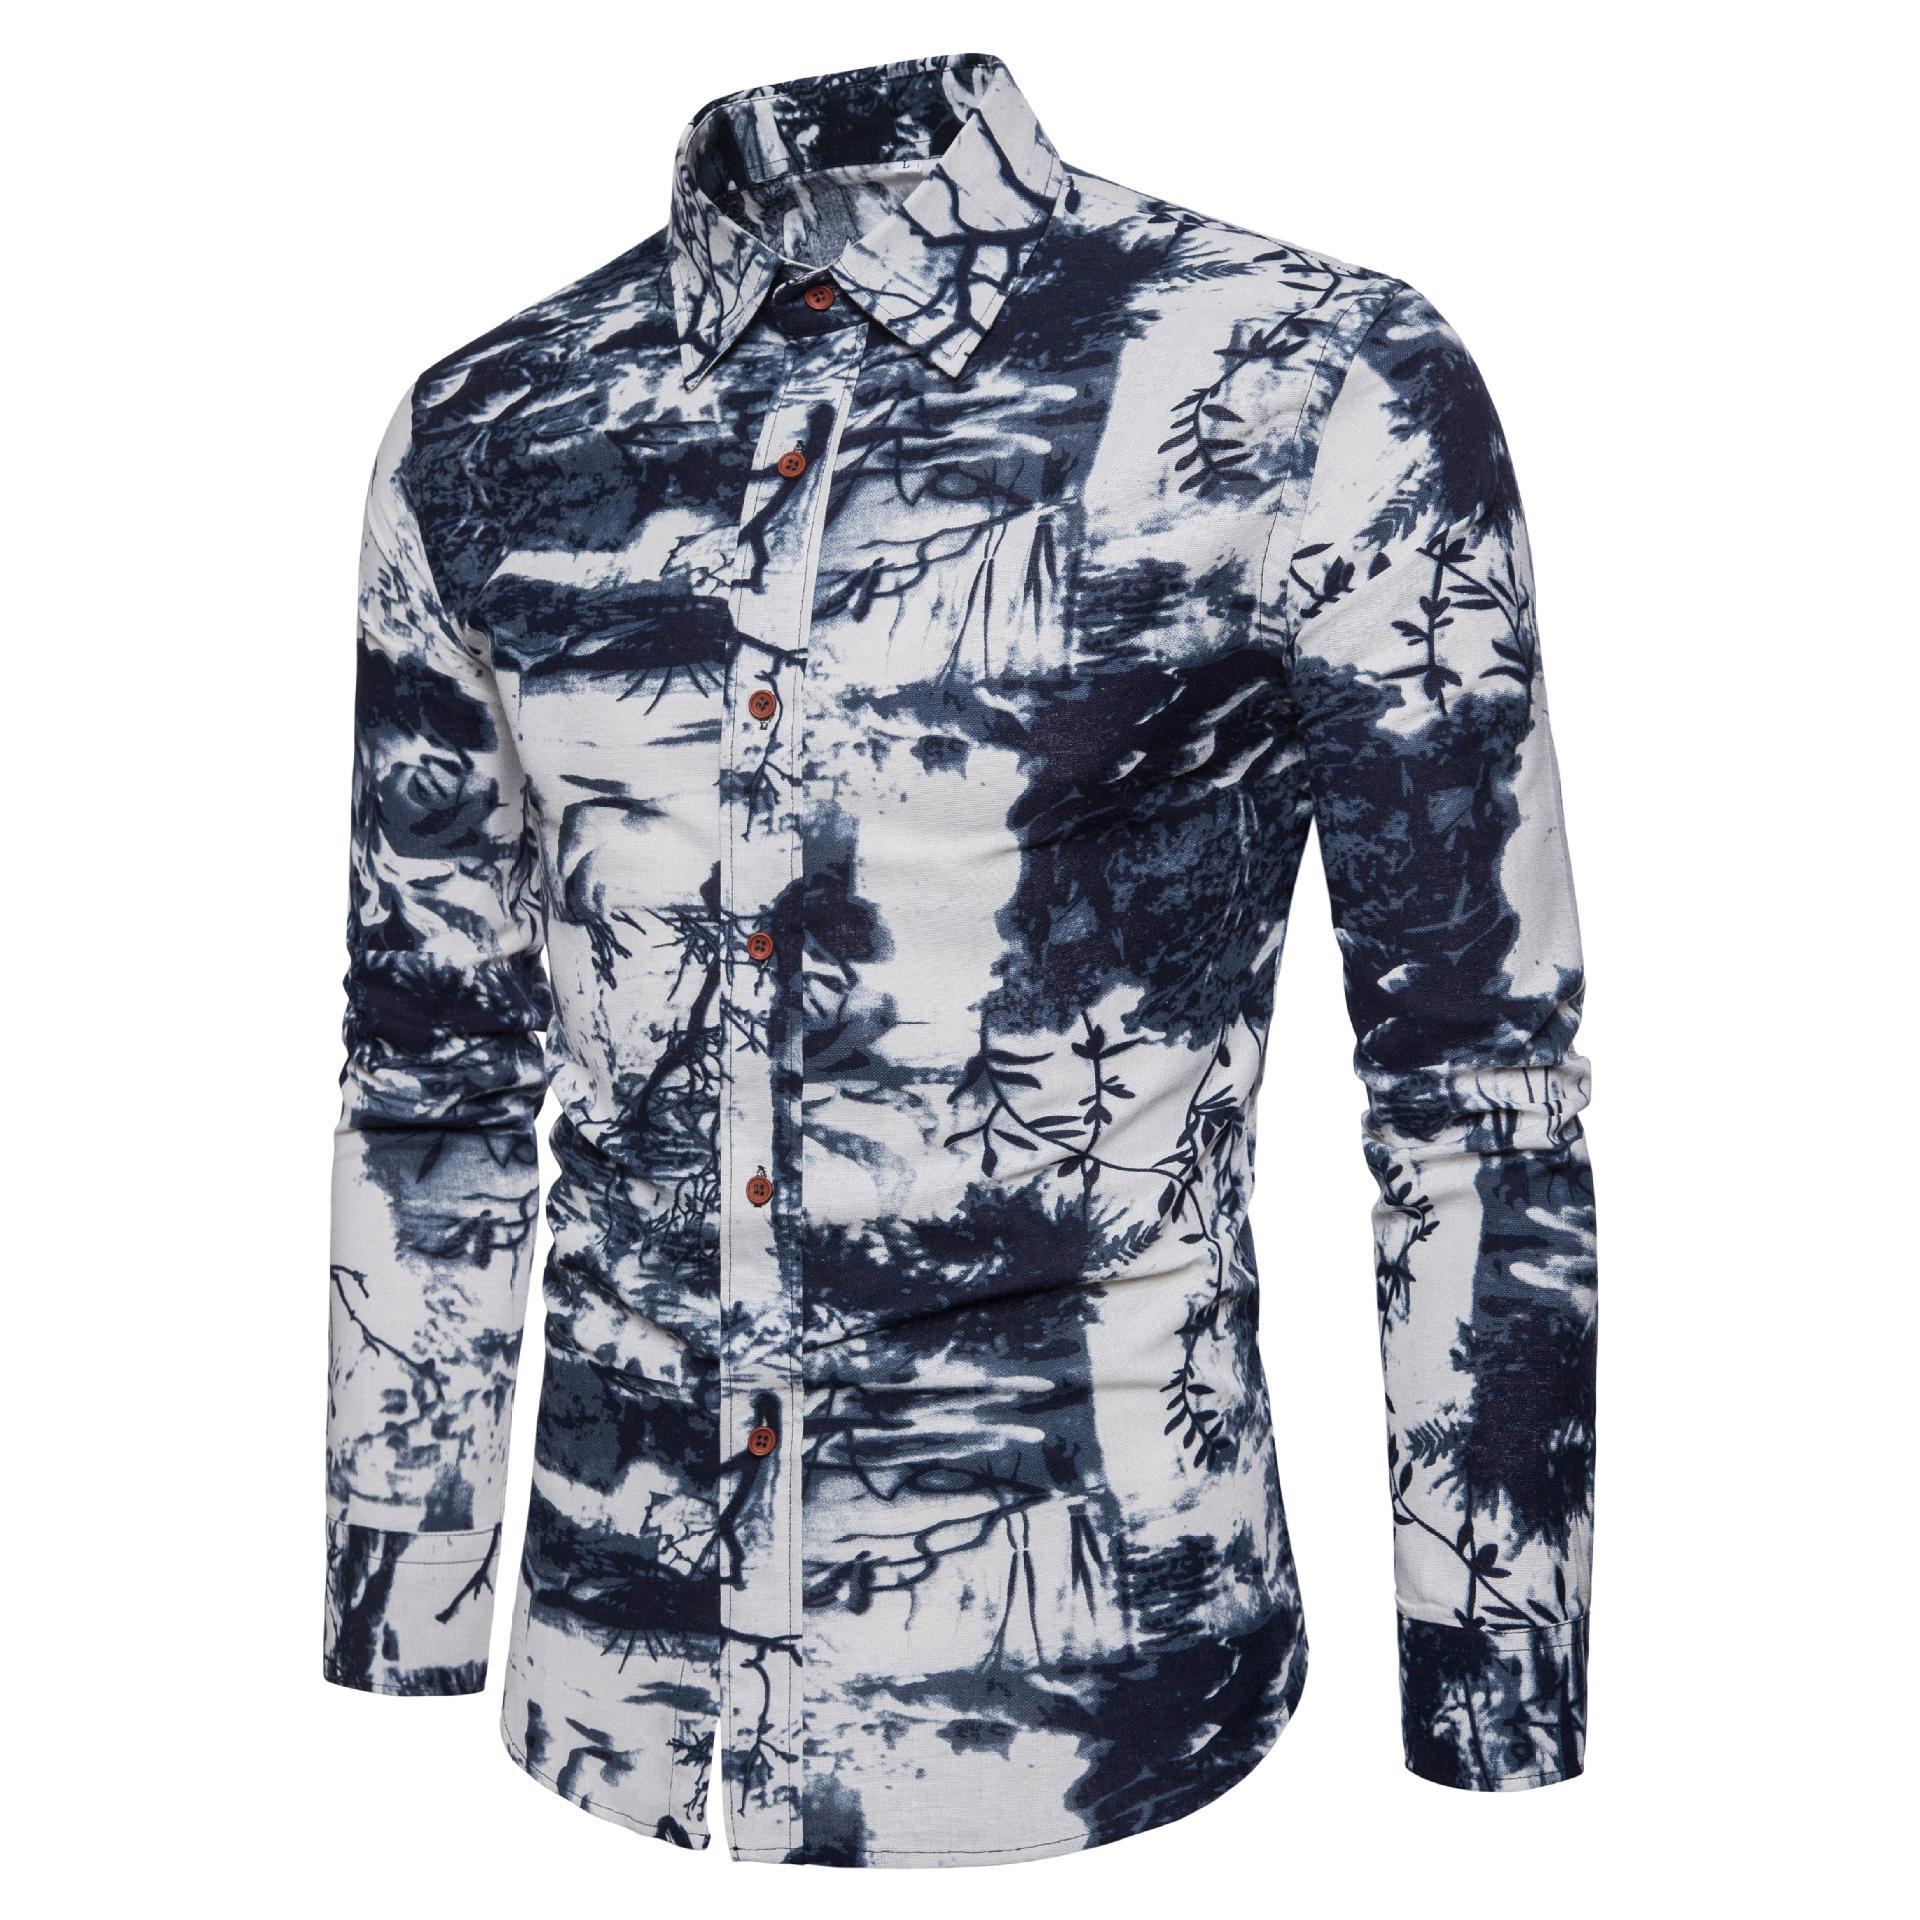 EBay's new men's national style large linen like long sleeve shirt cotton linen breathable ink printed shirt